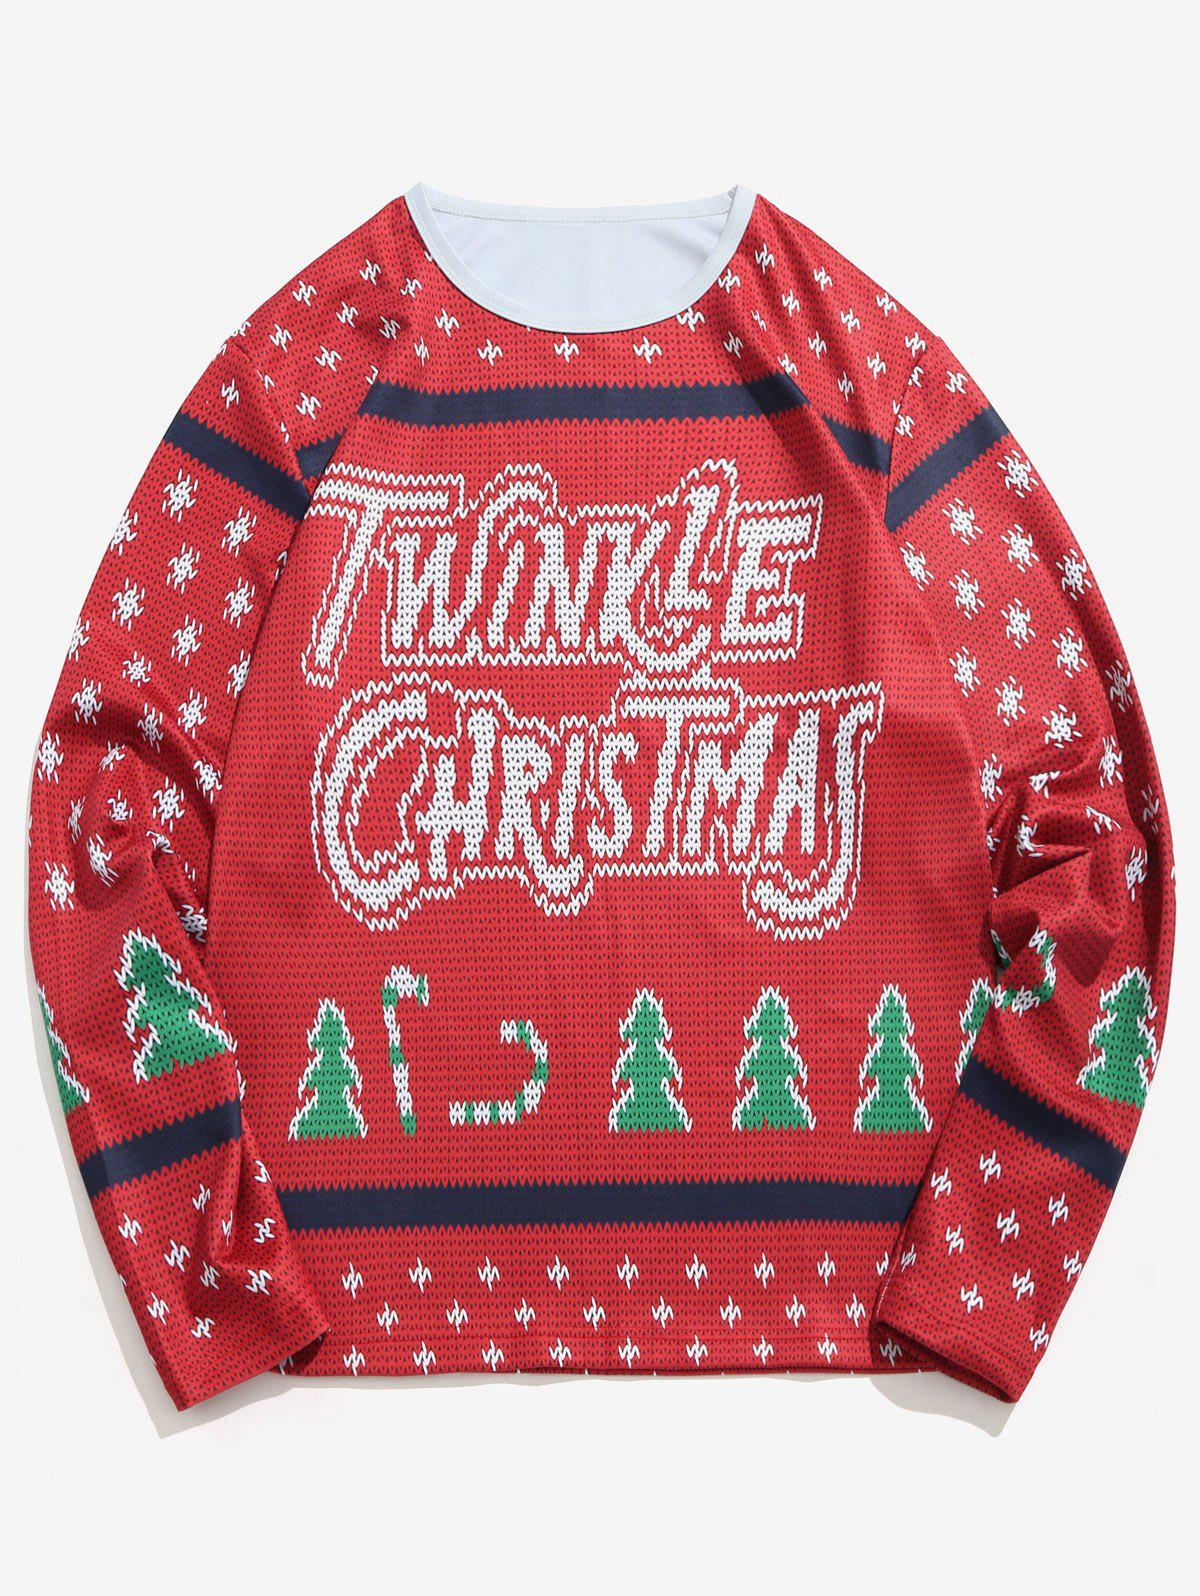 Letter Christmas Tree Knitted Sweater Print T-shirt - RED WINE XL